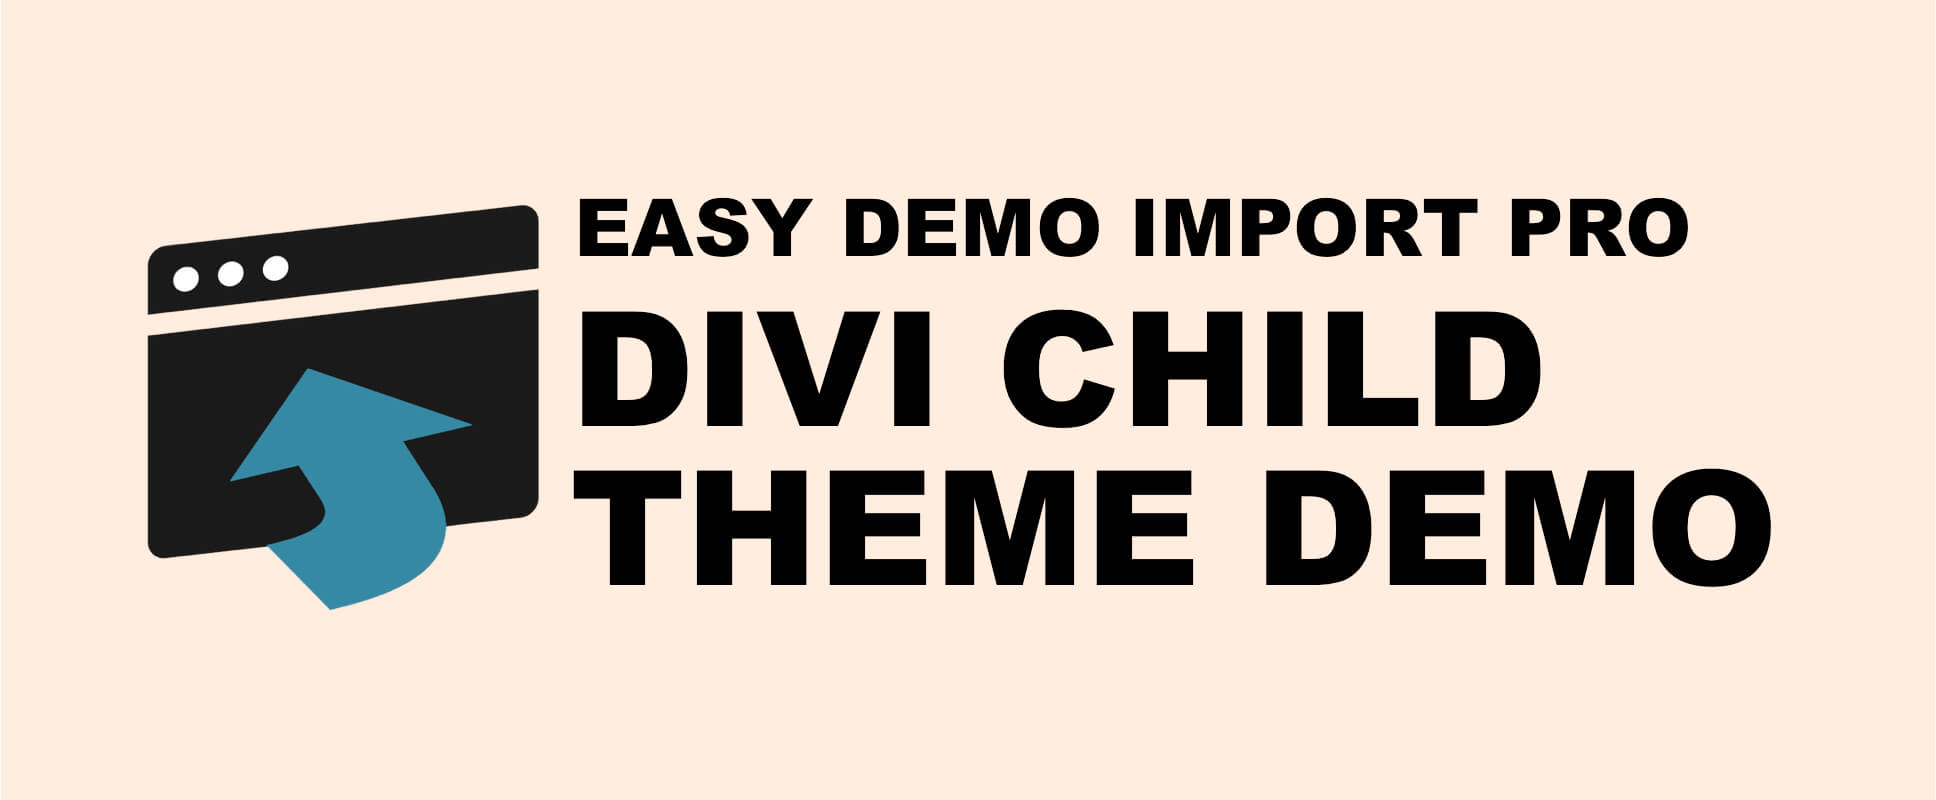 Easy Demo Import - Child Theme Demo For Divi - Fervent Solutions